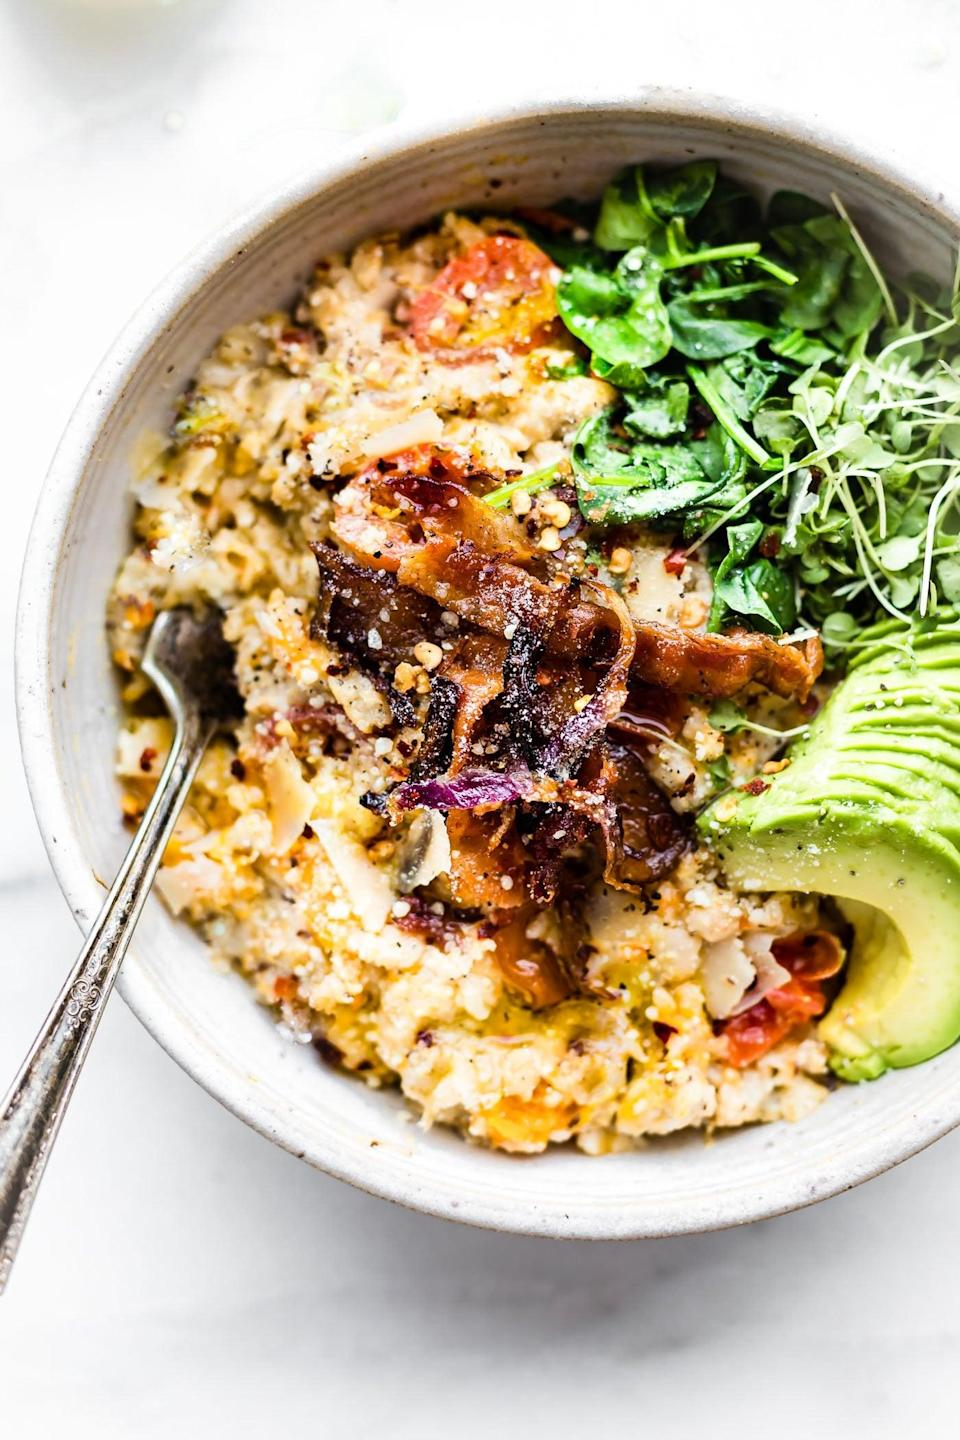 """<p>Tired of the same old sweet oatmeal? Shake up your routine with a savory take on the breakfast food. Crispy bacon, avocado, butternut squash, and parmesan are convincing enough to try this.</p> <p><strong>Get the recipe: </strong><a href=""""http://www.cottercrunch.com/savory-slow-cooker-oatmeal/"""" class=""""link rapid-noclick-resp"""" rel=""""nofollow noopener"""" target=""""_blank"""" data-ylk=""""slk:savory slow-cooker oatmeal with crispy bacon"""">savory slow-cooker oatmeal with crispy bacon</a></p>"""